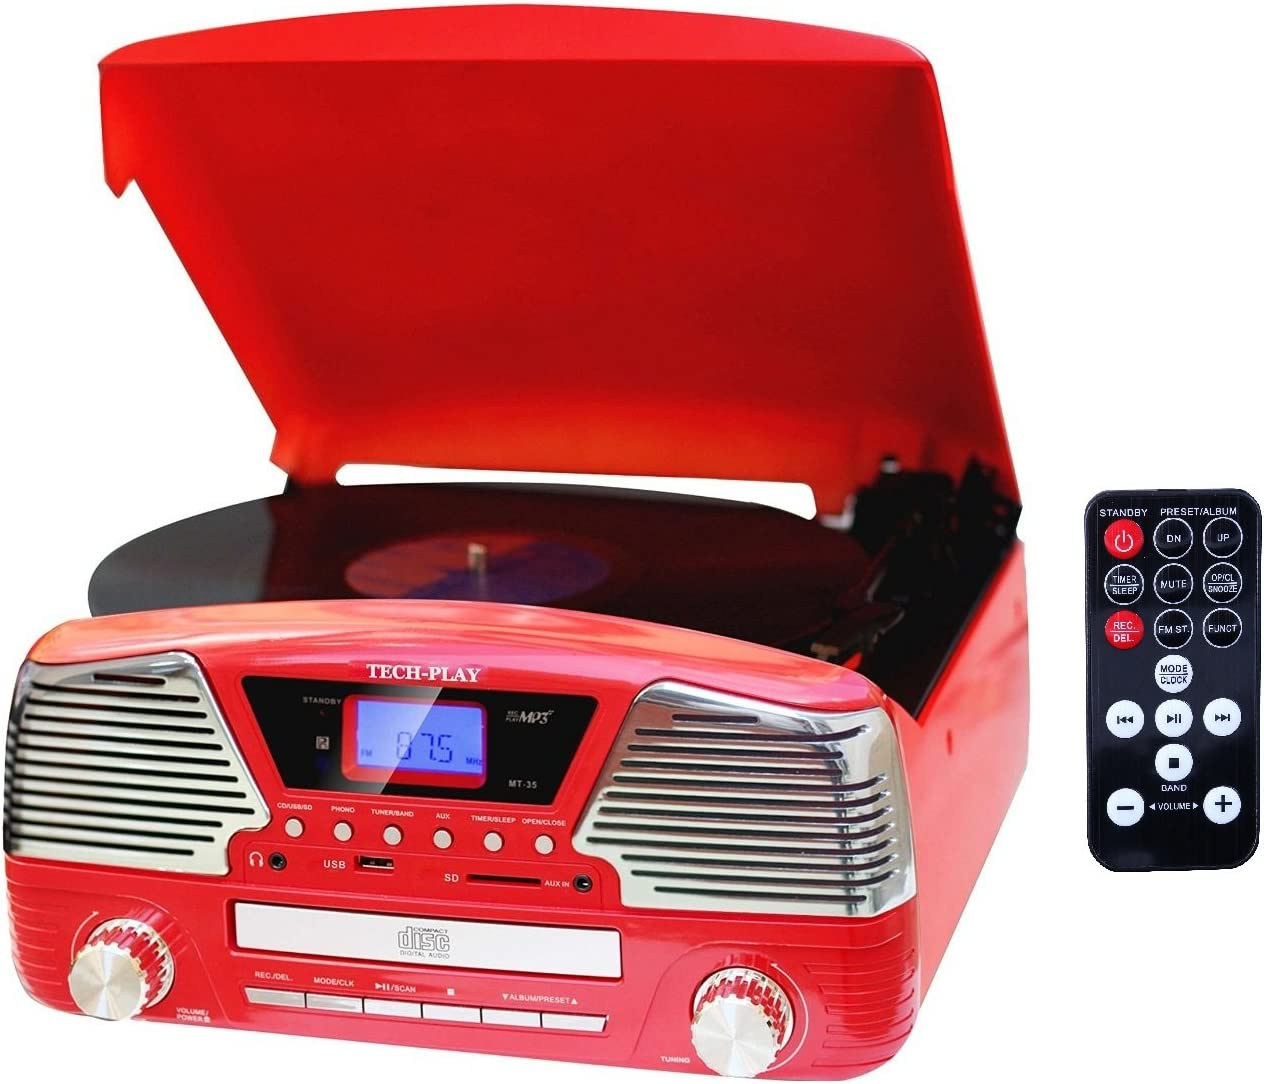 TechPlay ODC35 RD, 3 Spead turntable, programmable MP3 CD player, USB SD, radio remote control in Red